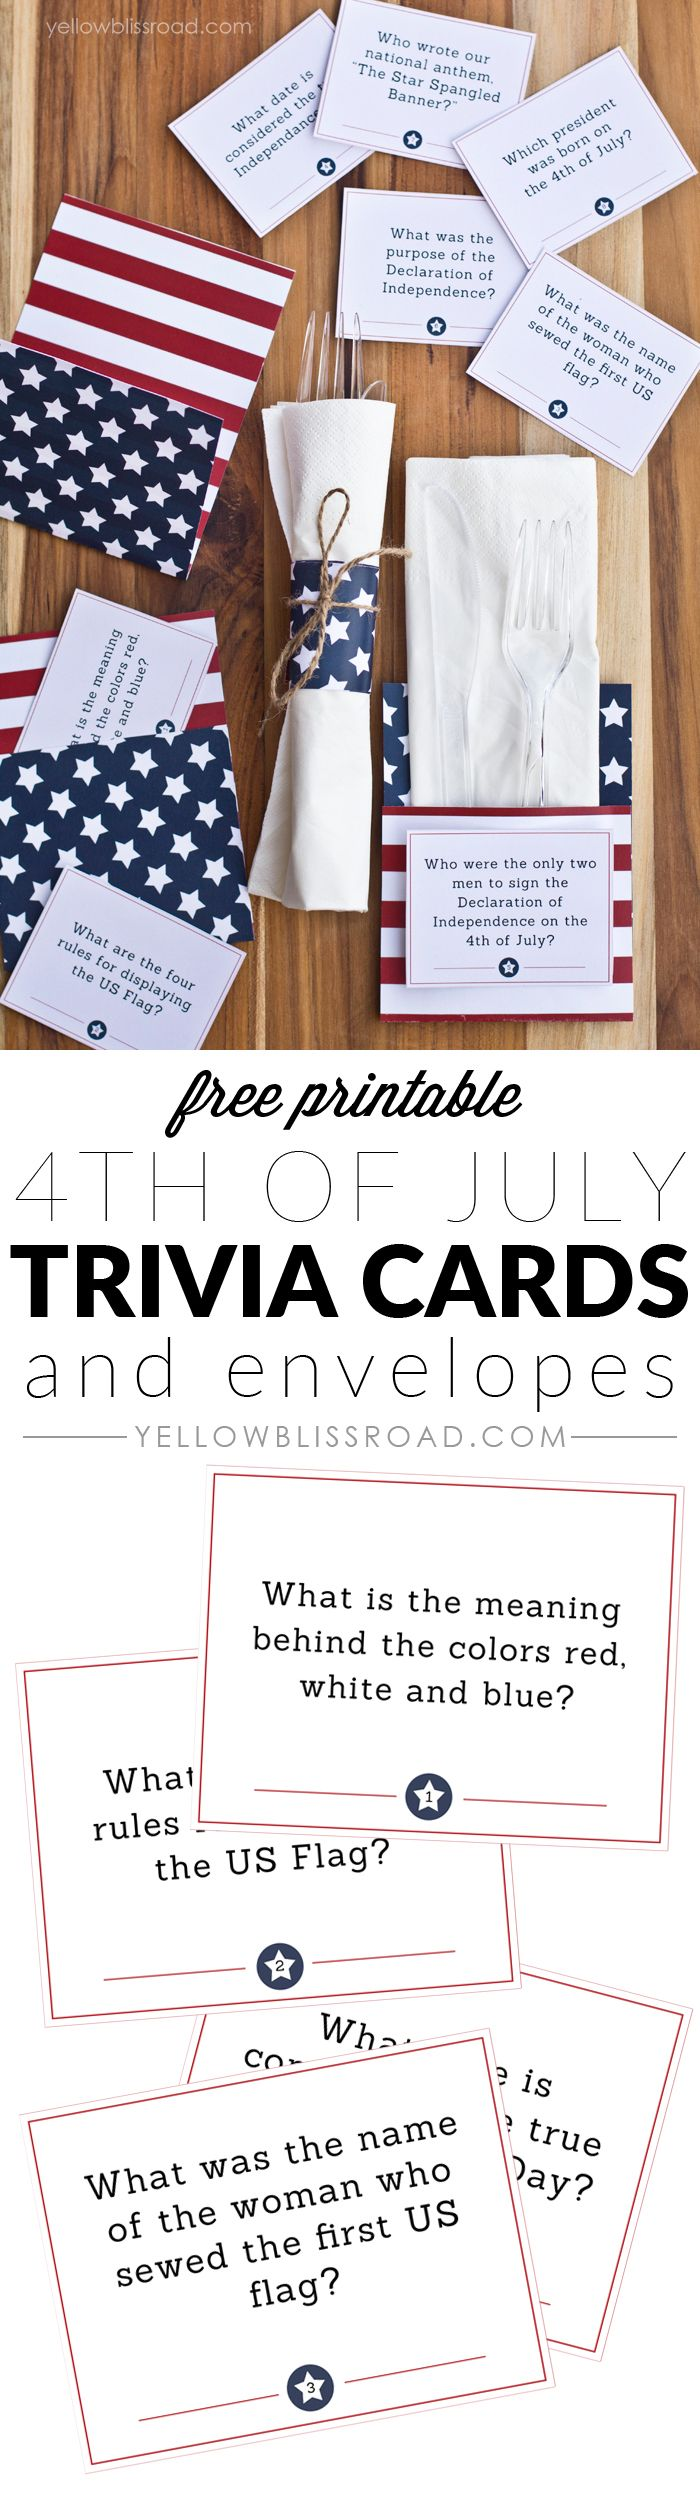 Free printable 4th of July Trivia Cards and Utensil Envelopes